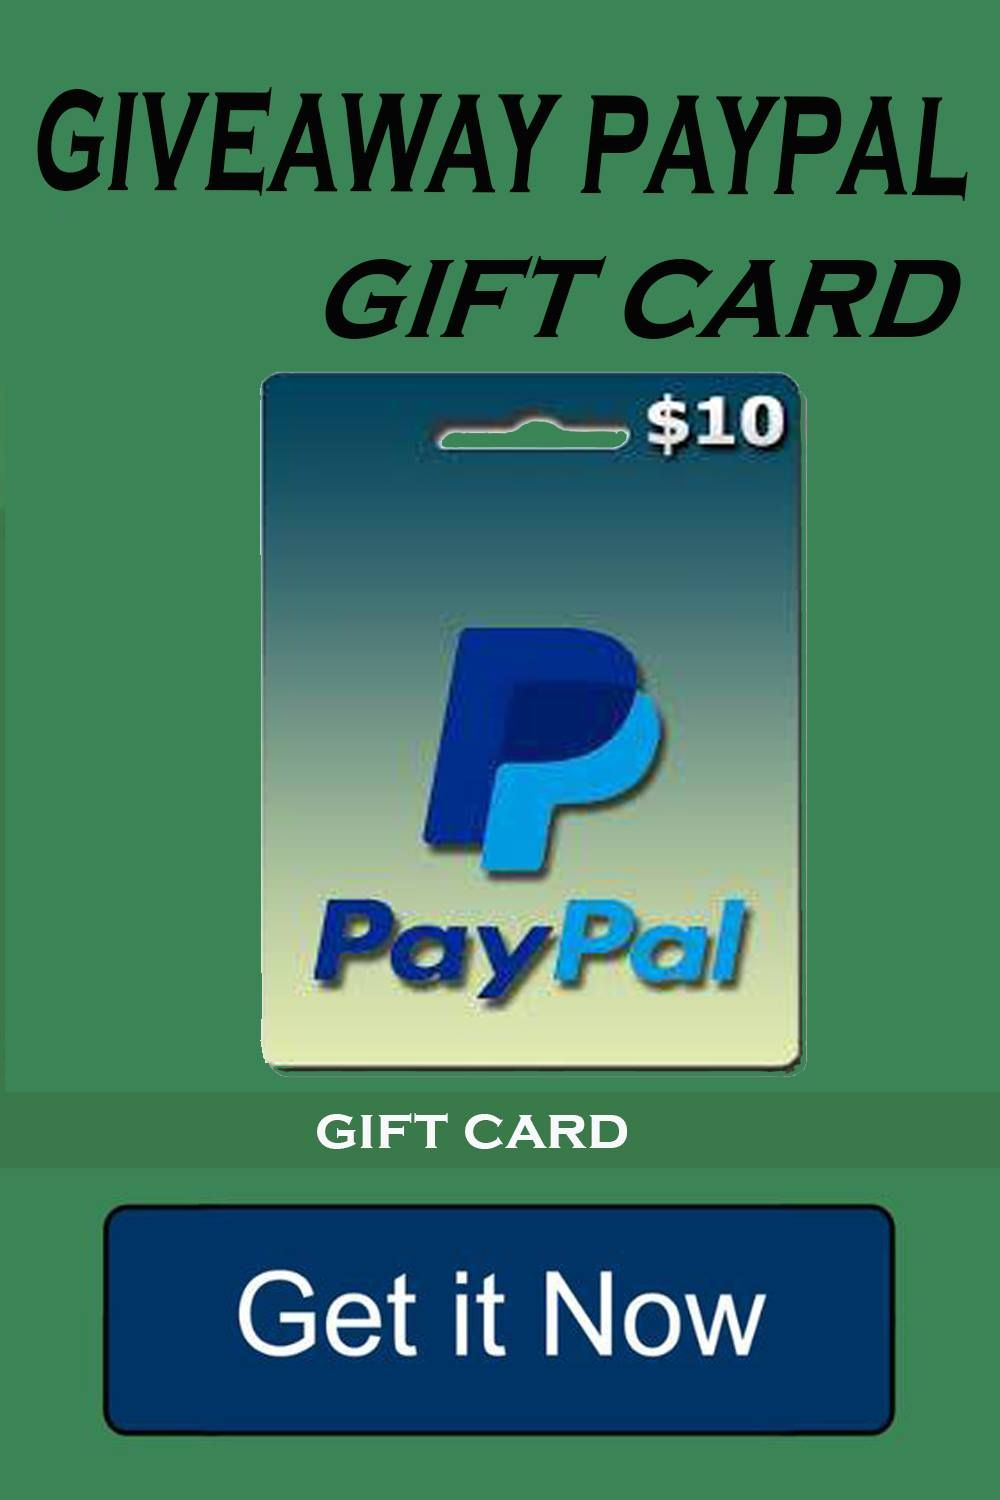 How To Get Free Money On Paypal Win 10 Very Easy 2020 New Updated Paypal Gift Card Free Gift Cards Free Gift Card Generator